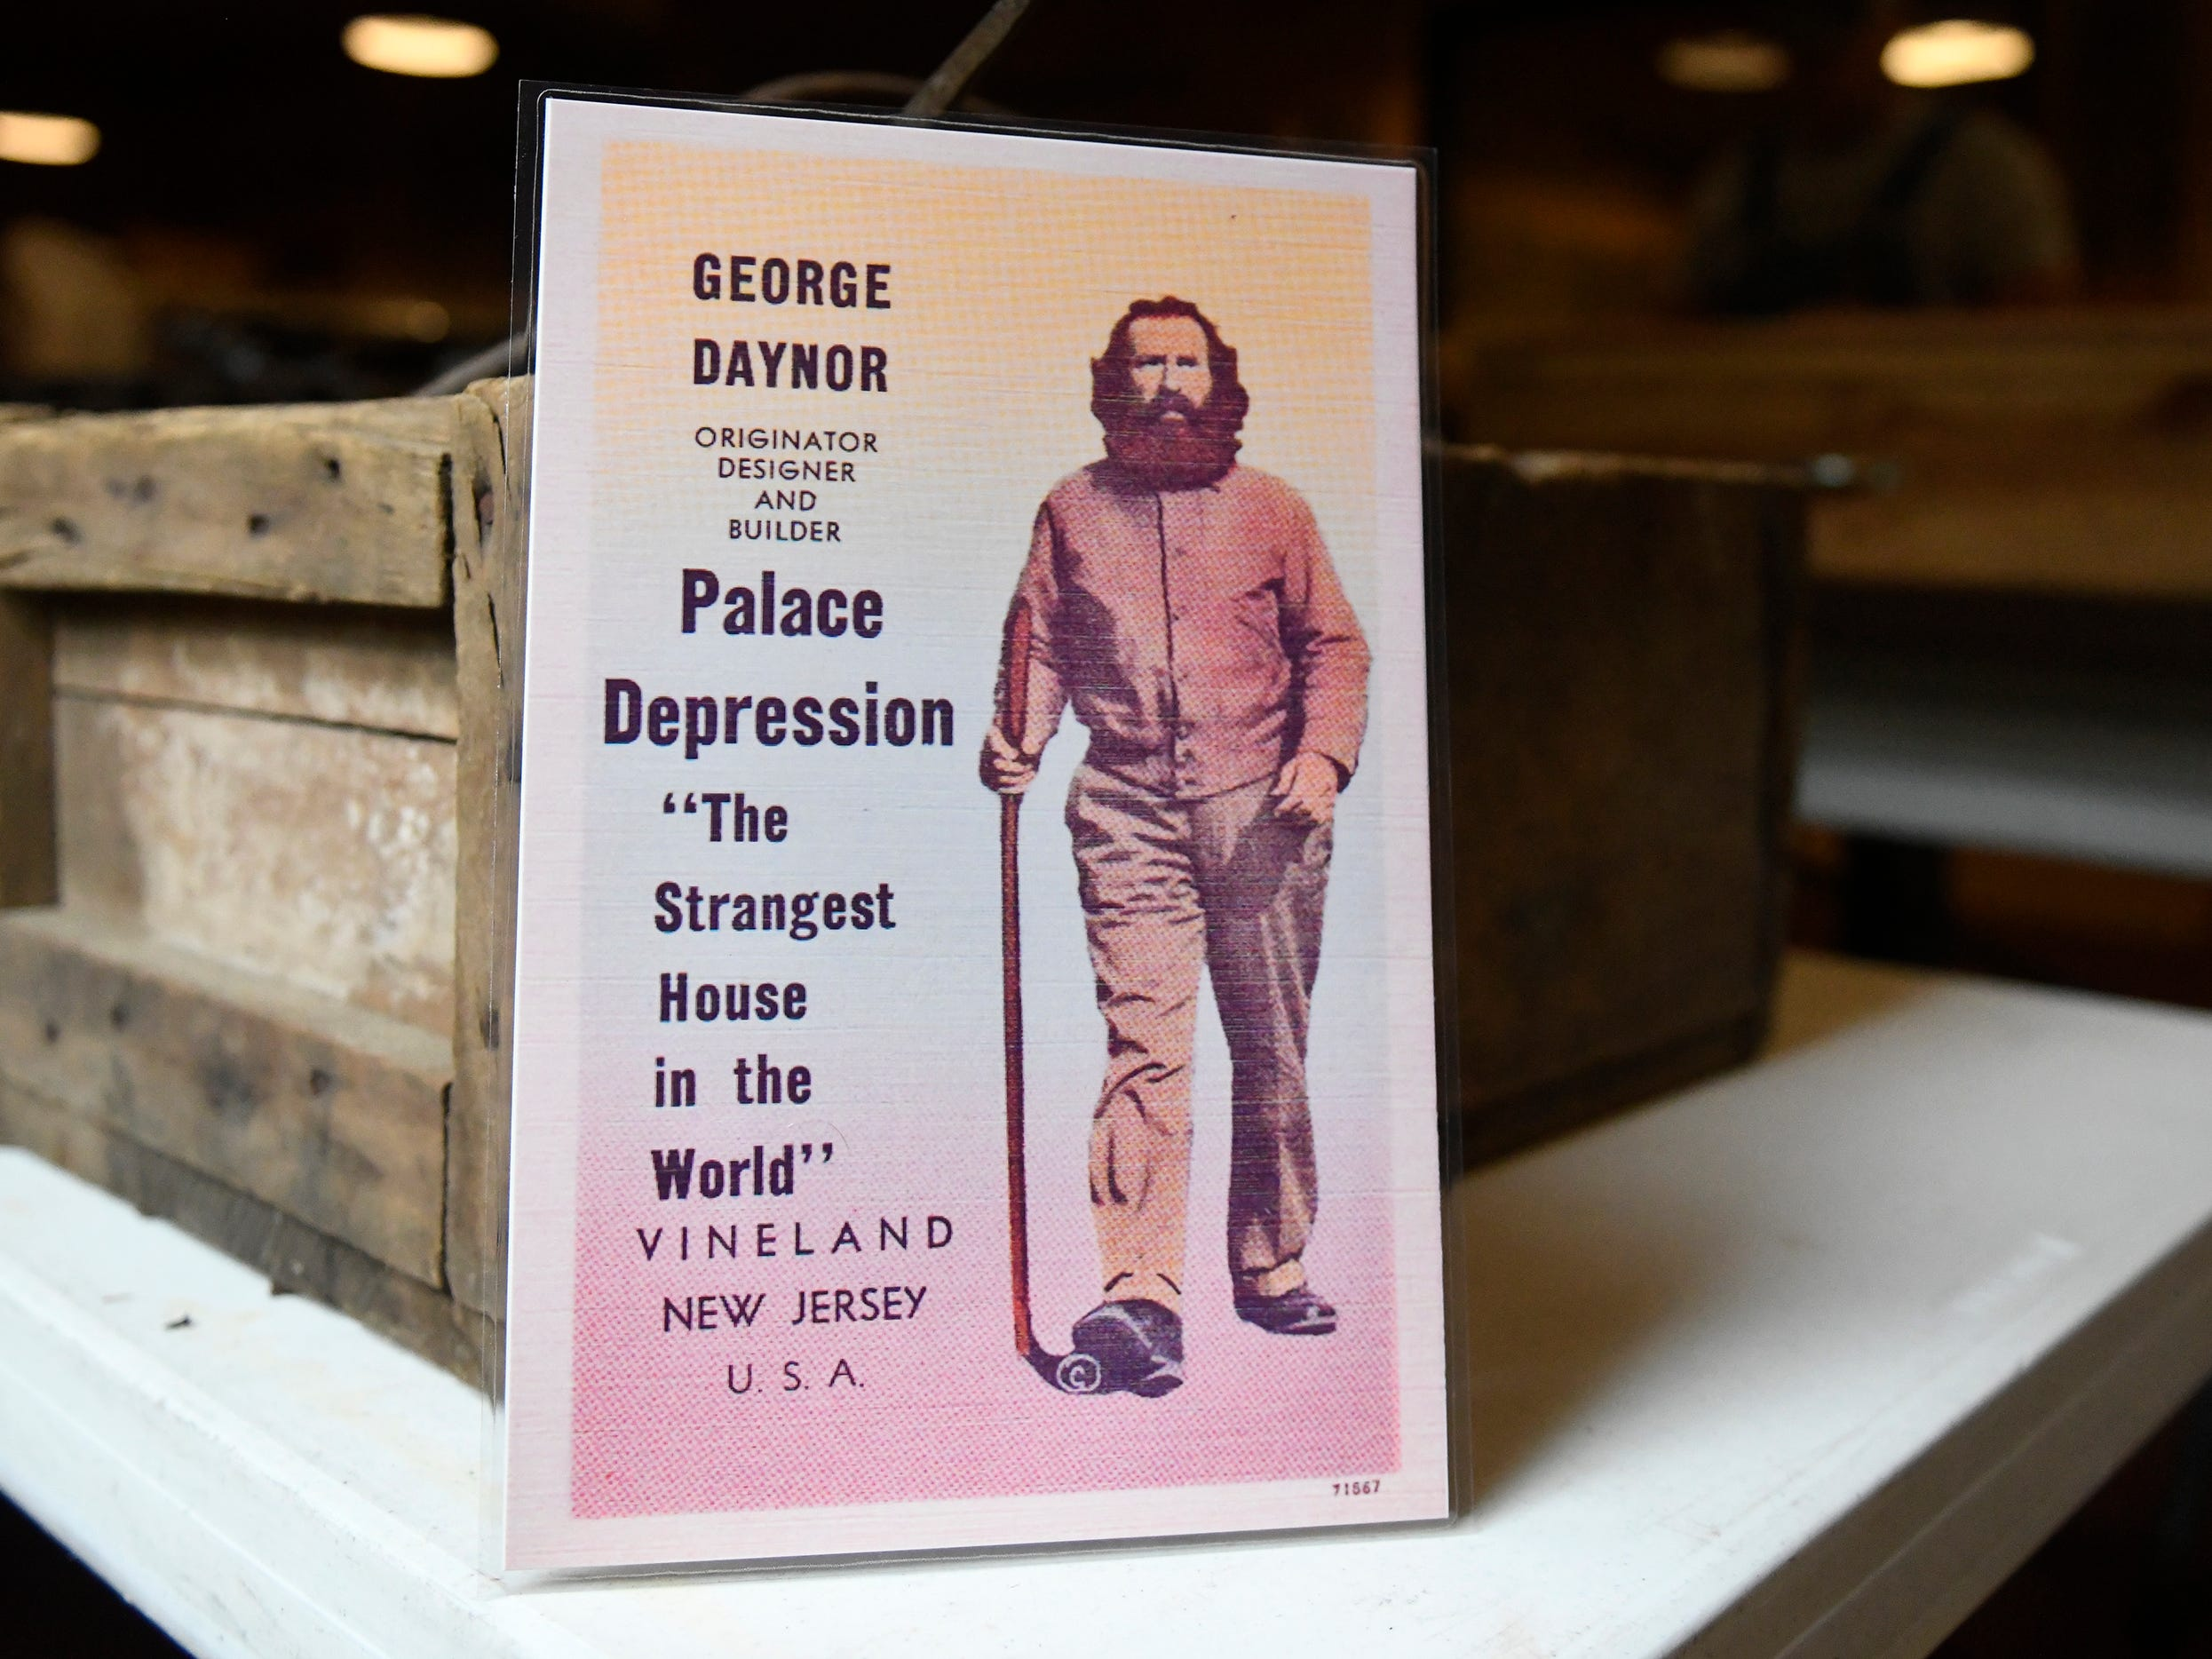 George Daynor died a pauper in 1964 at a reported 104 years old. After Daynor's death, a fire destroyed the Palace of Depression and Vineland razed it in 1969.